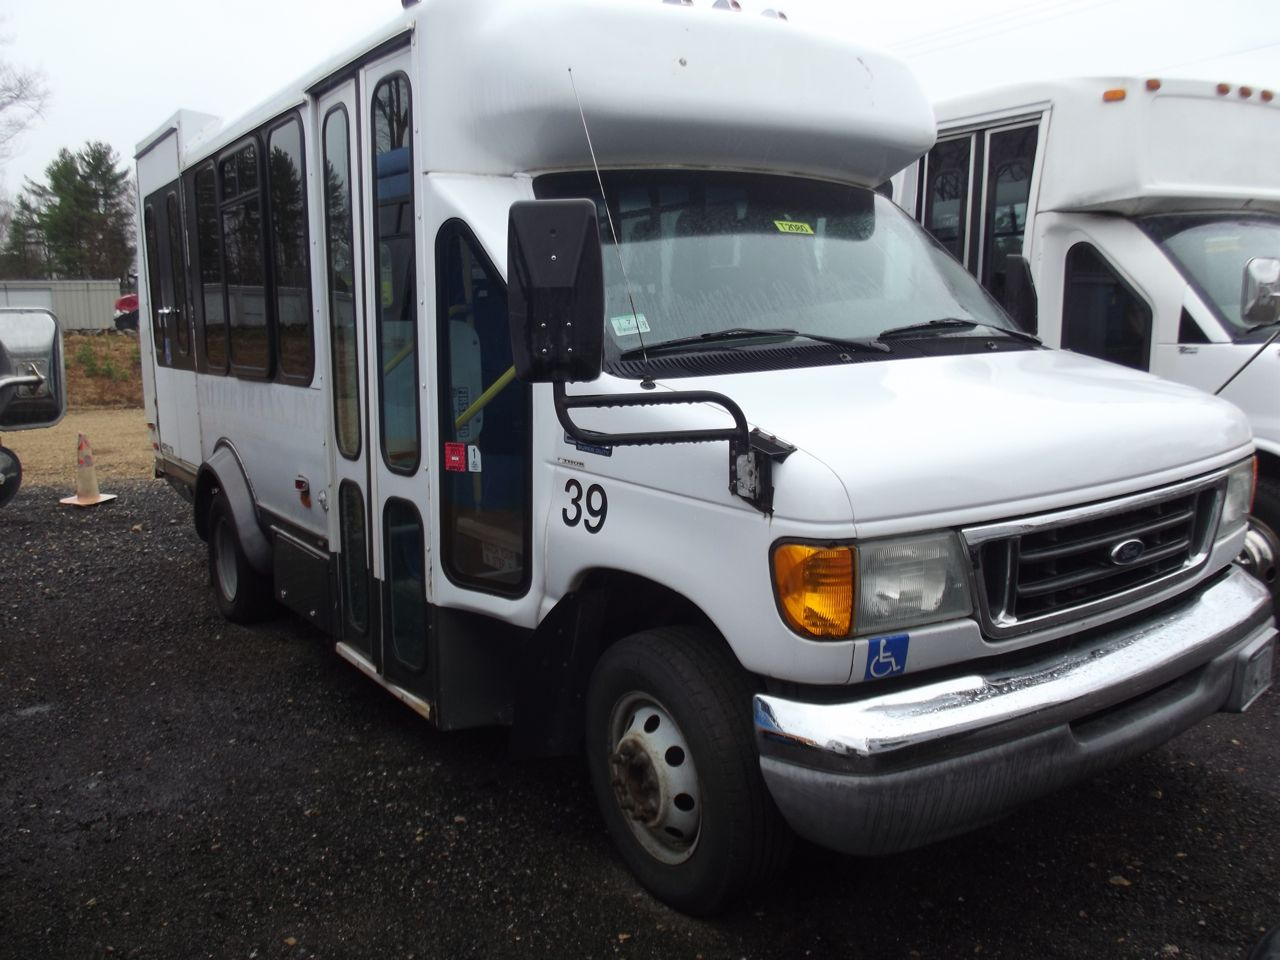 Ford Buses For Sale | Shofur Market